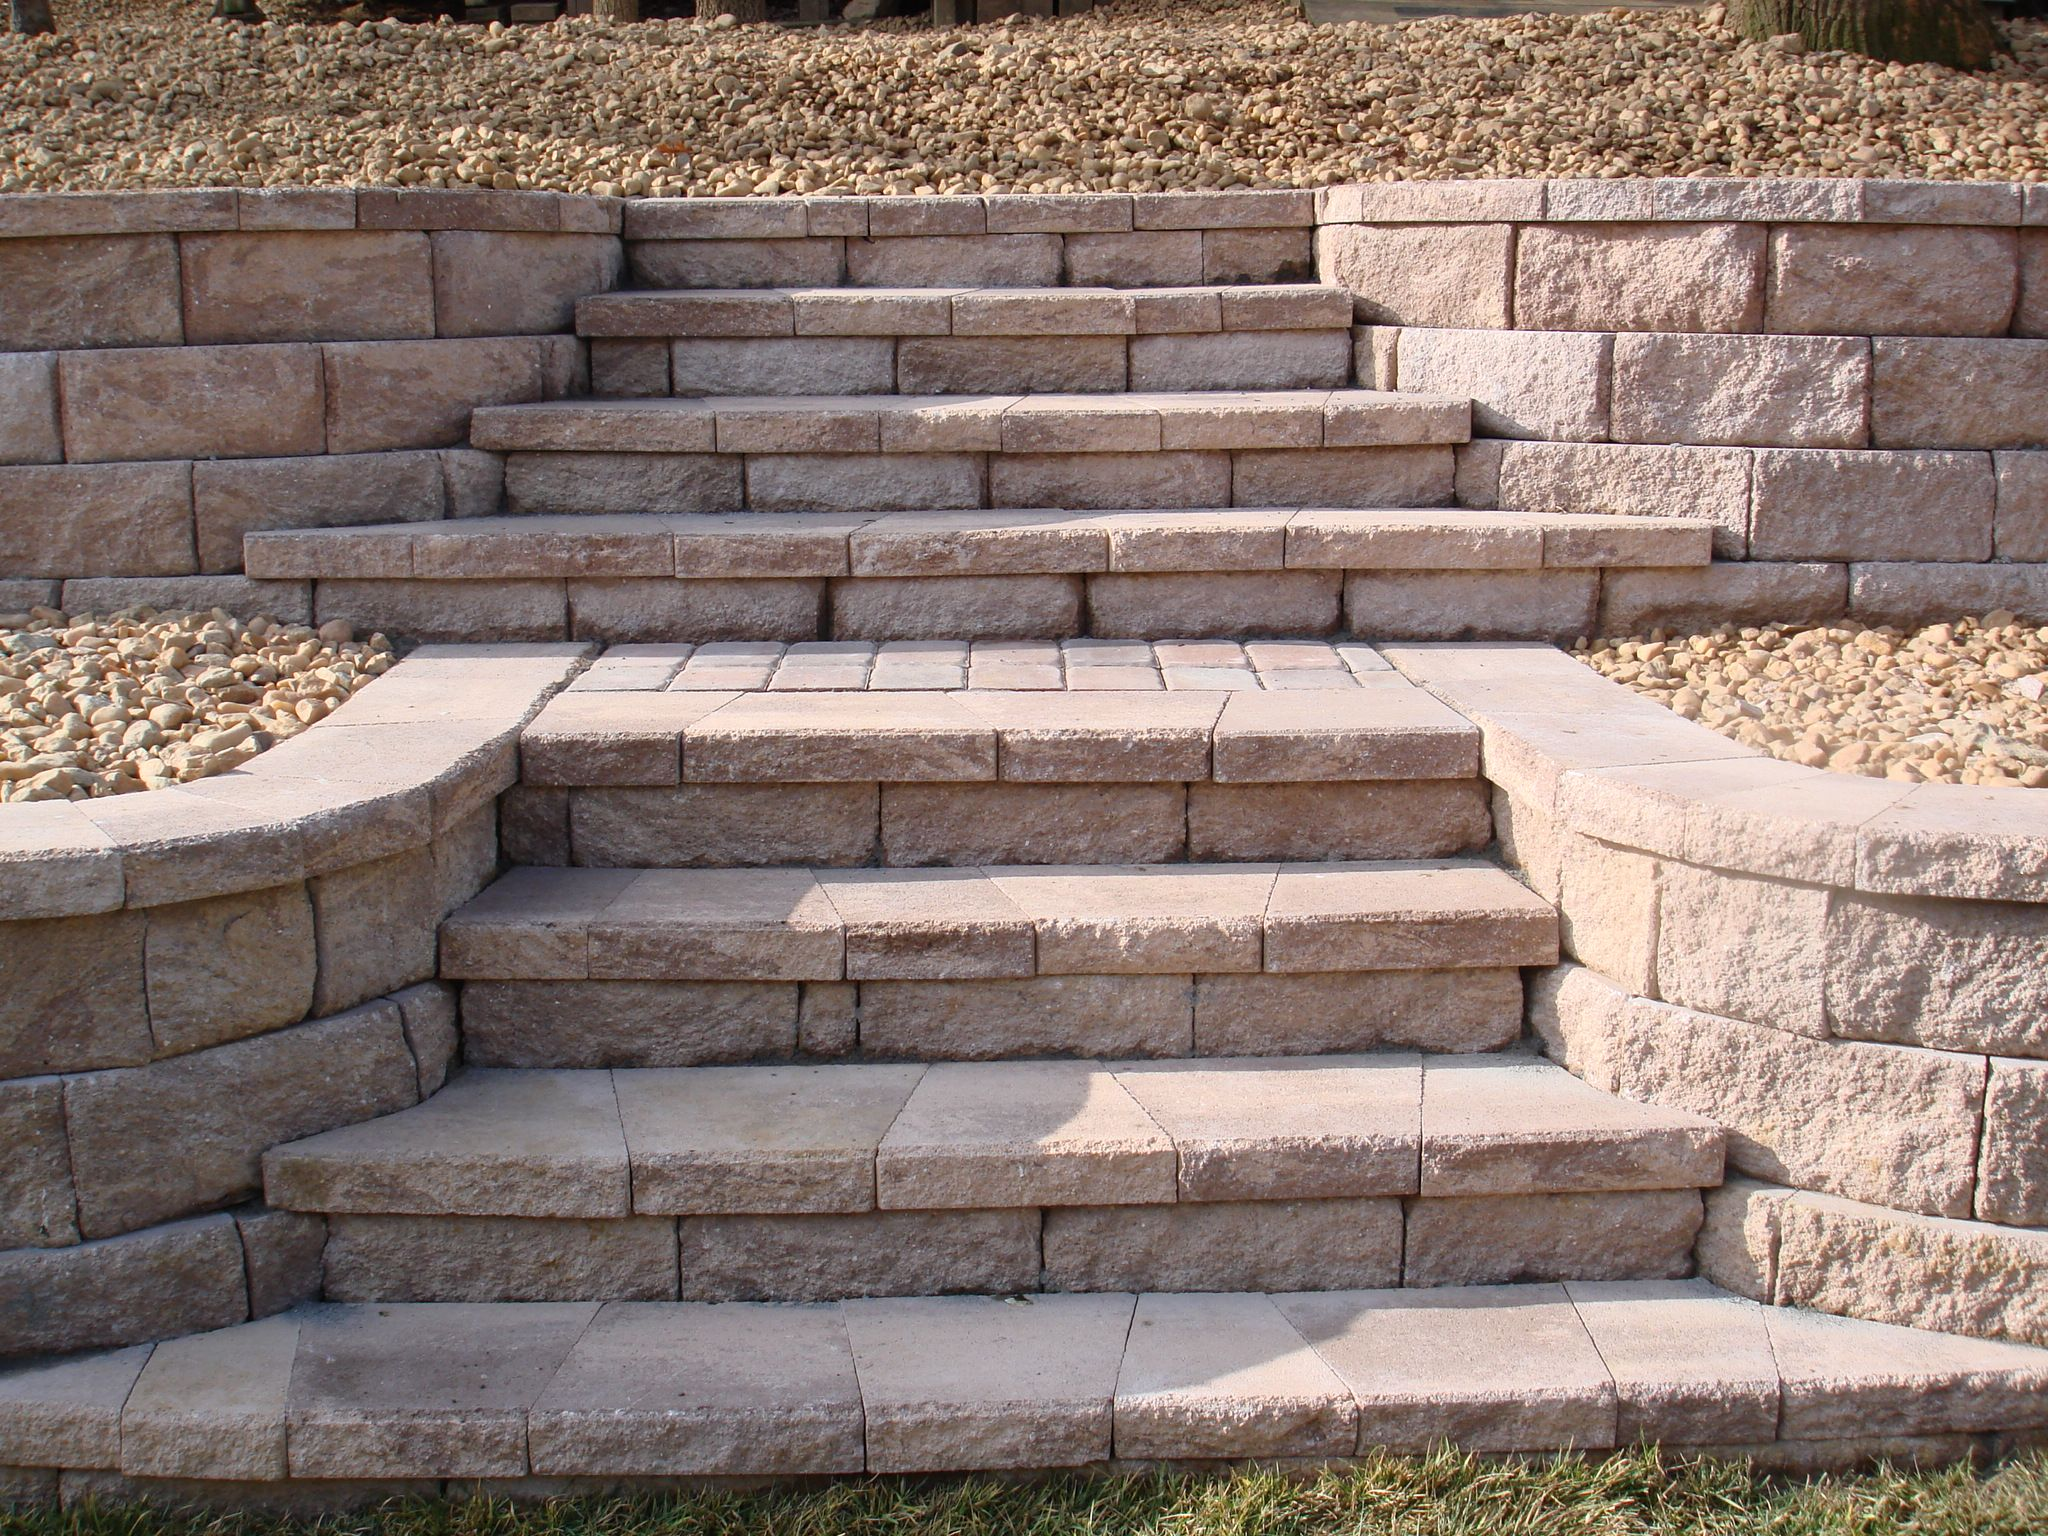 How to build steps with pavers - Pavers Natural Blues Stone Steps With 1 2 Inch Veneer Face Stone Gardening Pinterest Stone Steps Landscaping And The Rock